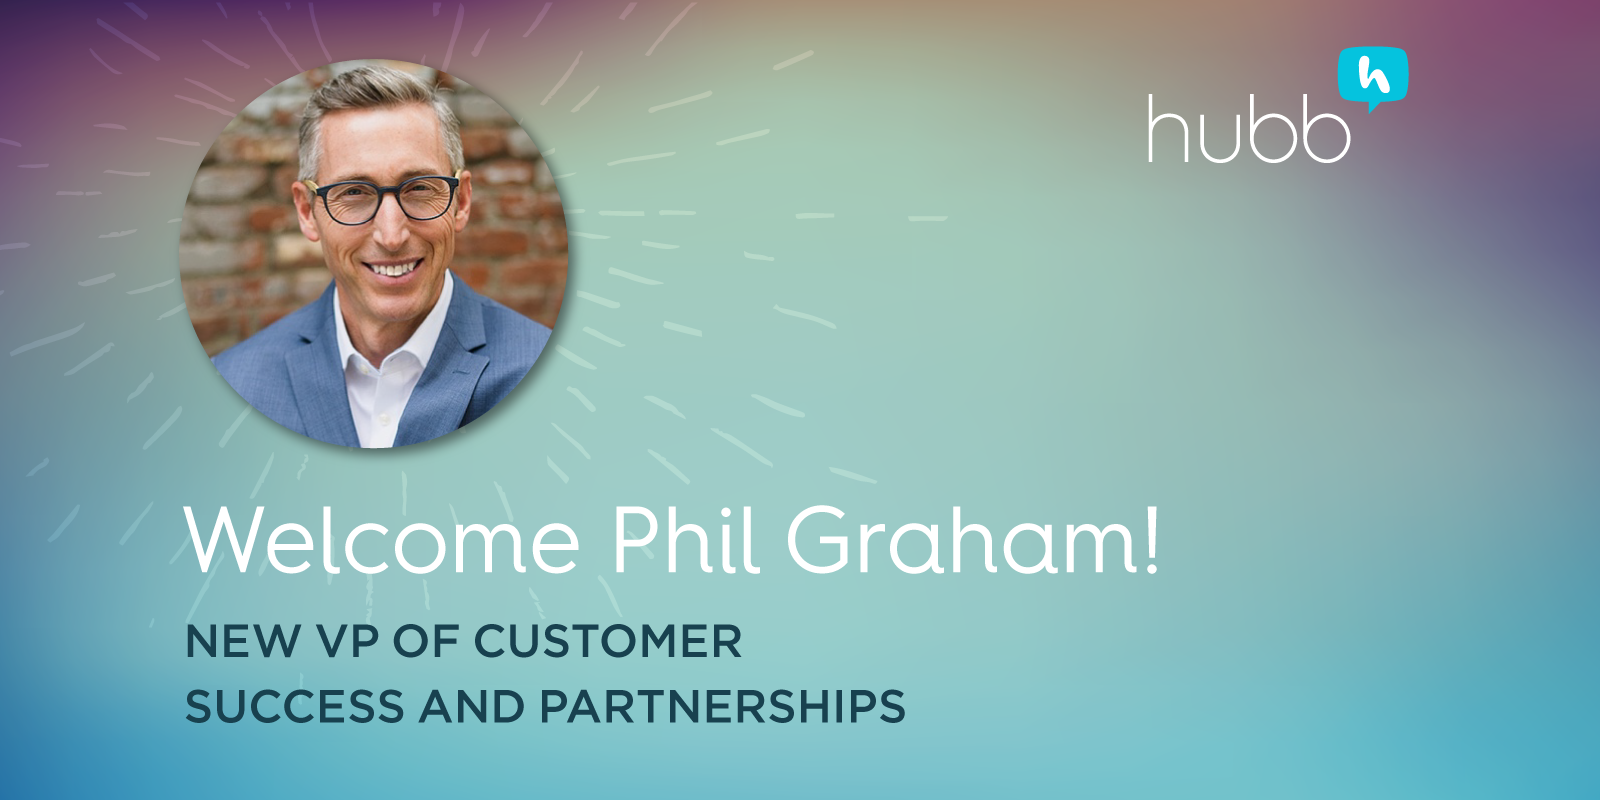 Welcome Phil Graham, New VP of Customer Success and Partnerships